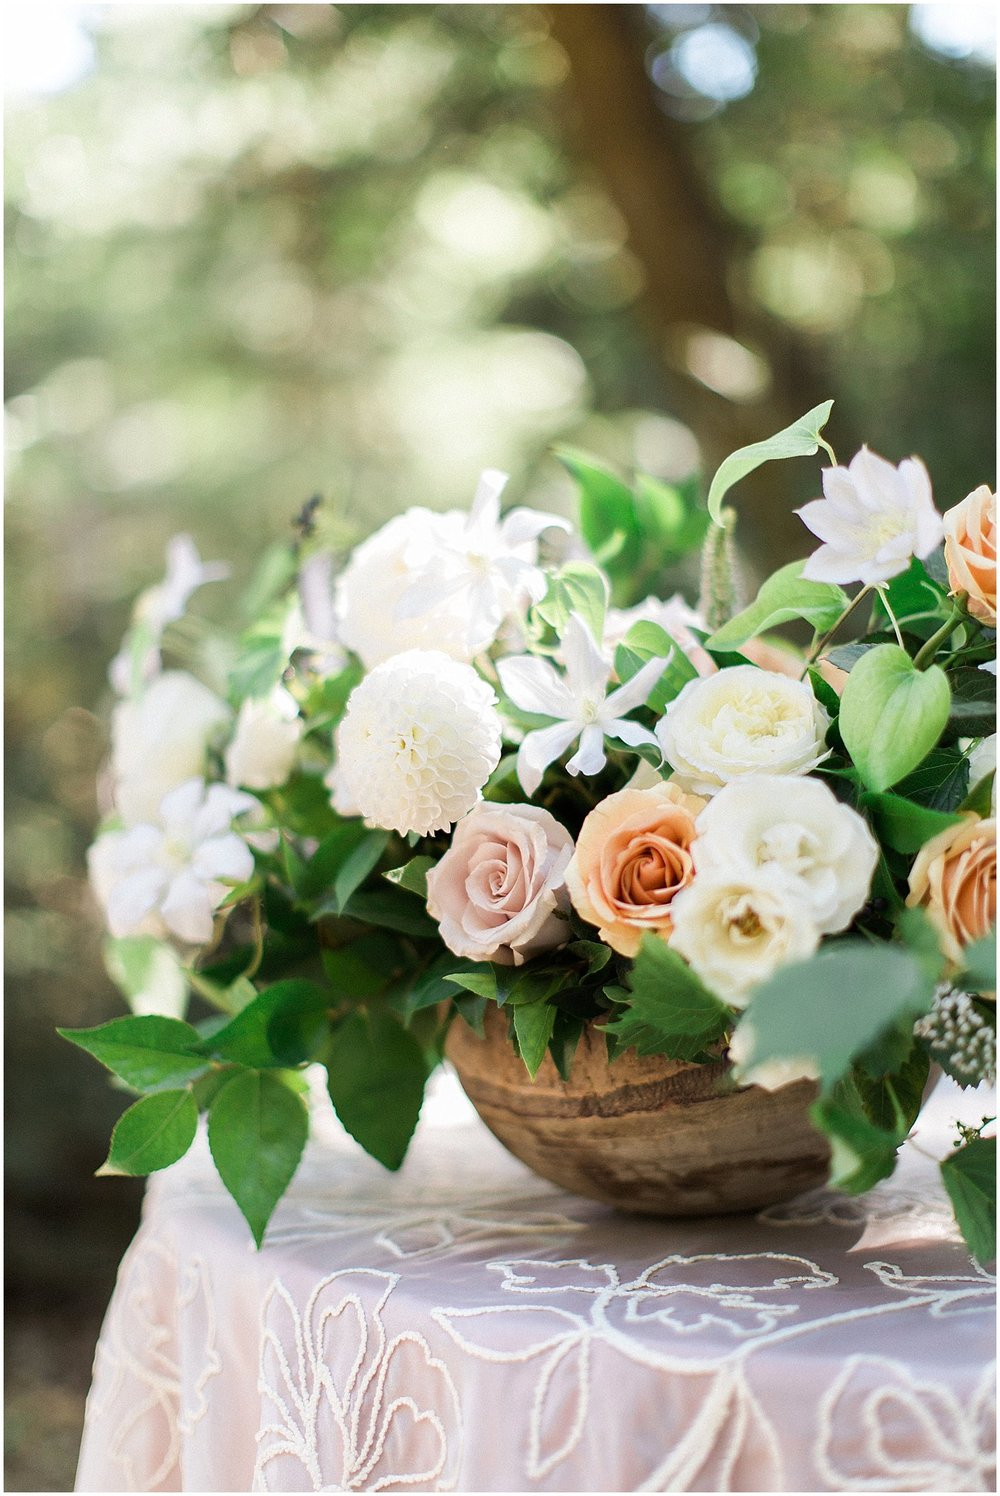 Lush Garden Rose Centerpiece by Modern Bouquet featured on Style Me Pretty | Phoenix Wedding Planner | Megan Dileen Events